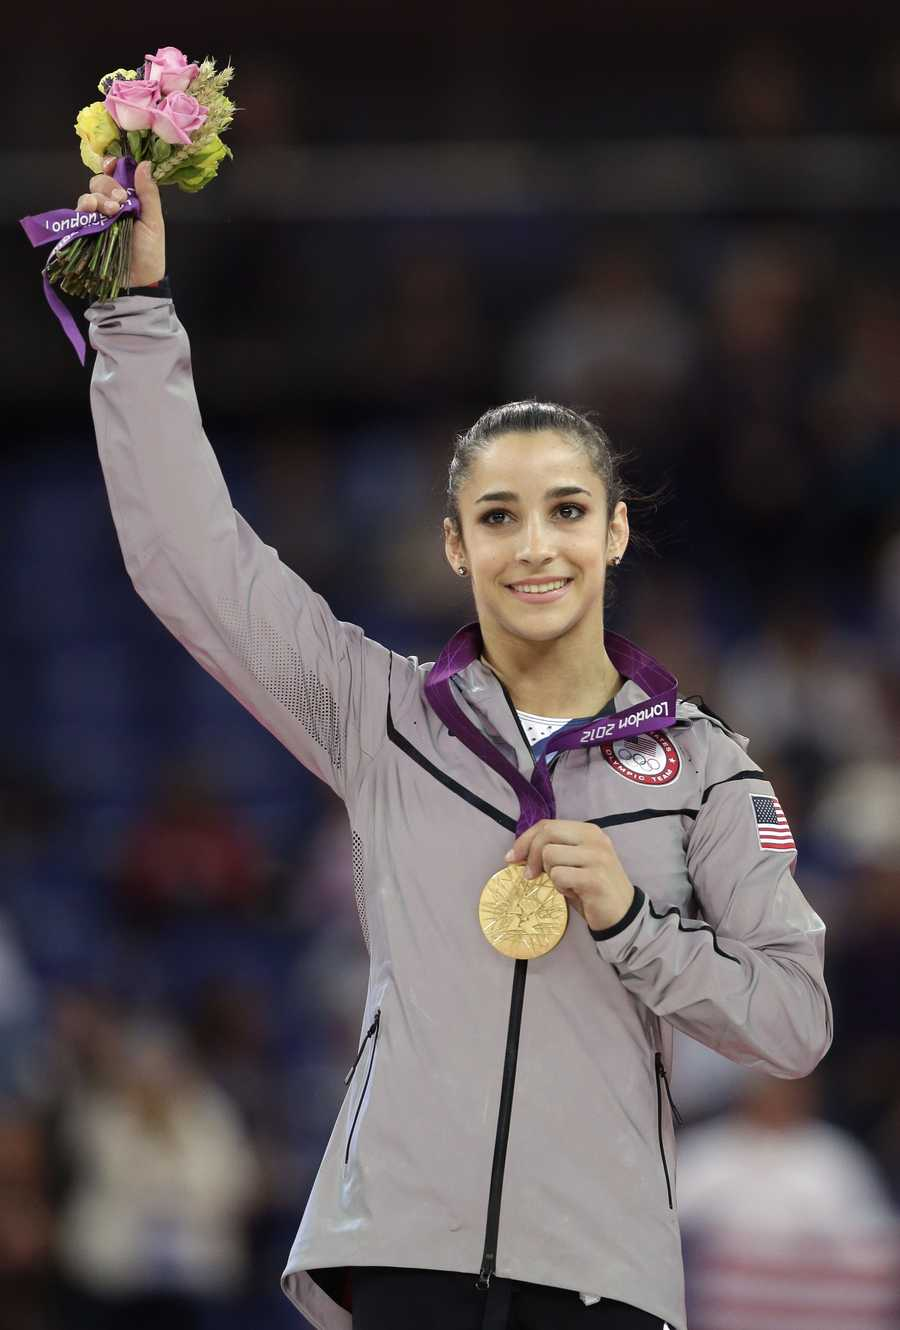 Alexandra Raisman displays her gold medal during the podium ceremony for the artistic gymnastics women's floor exercise final.